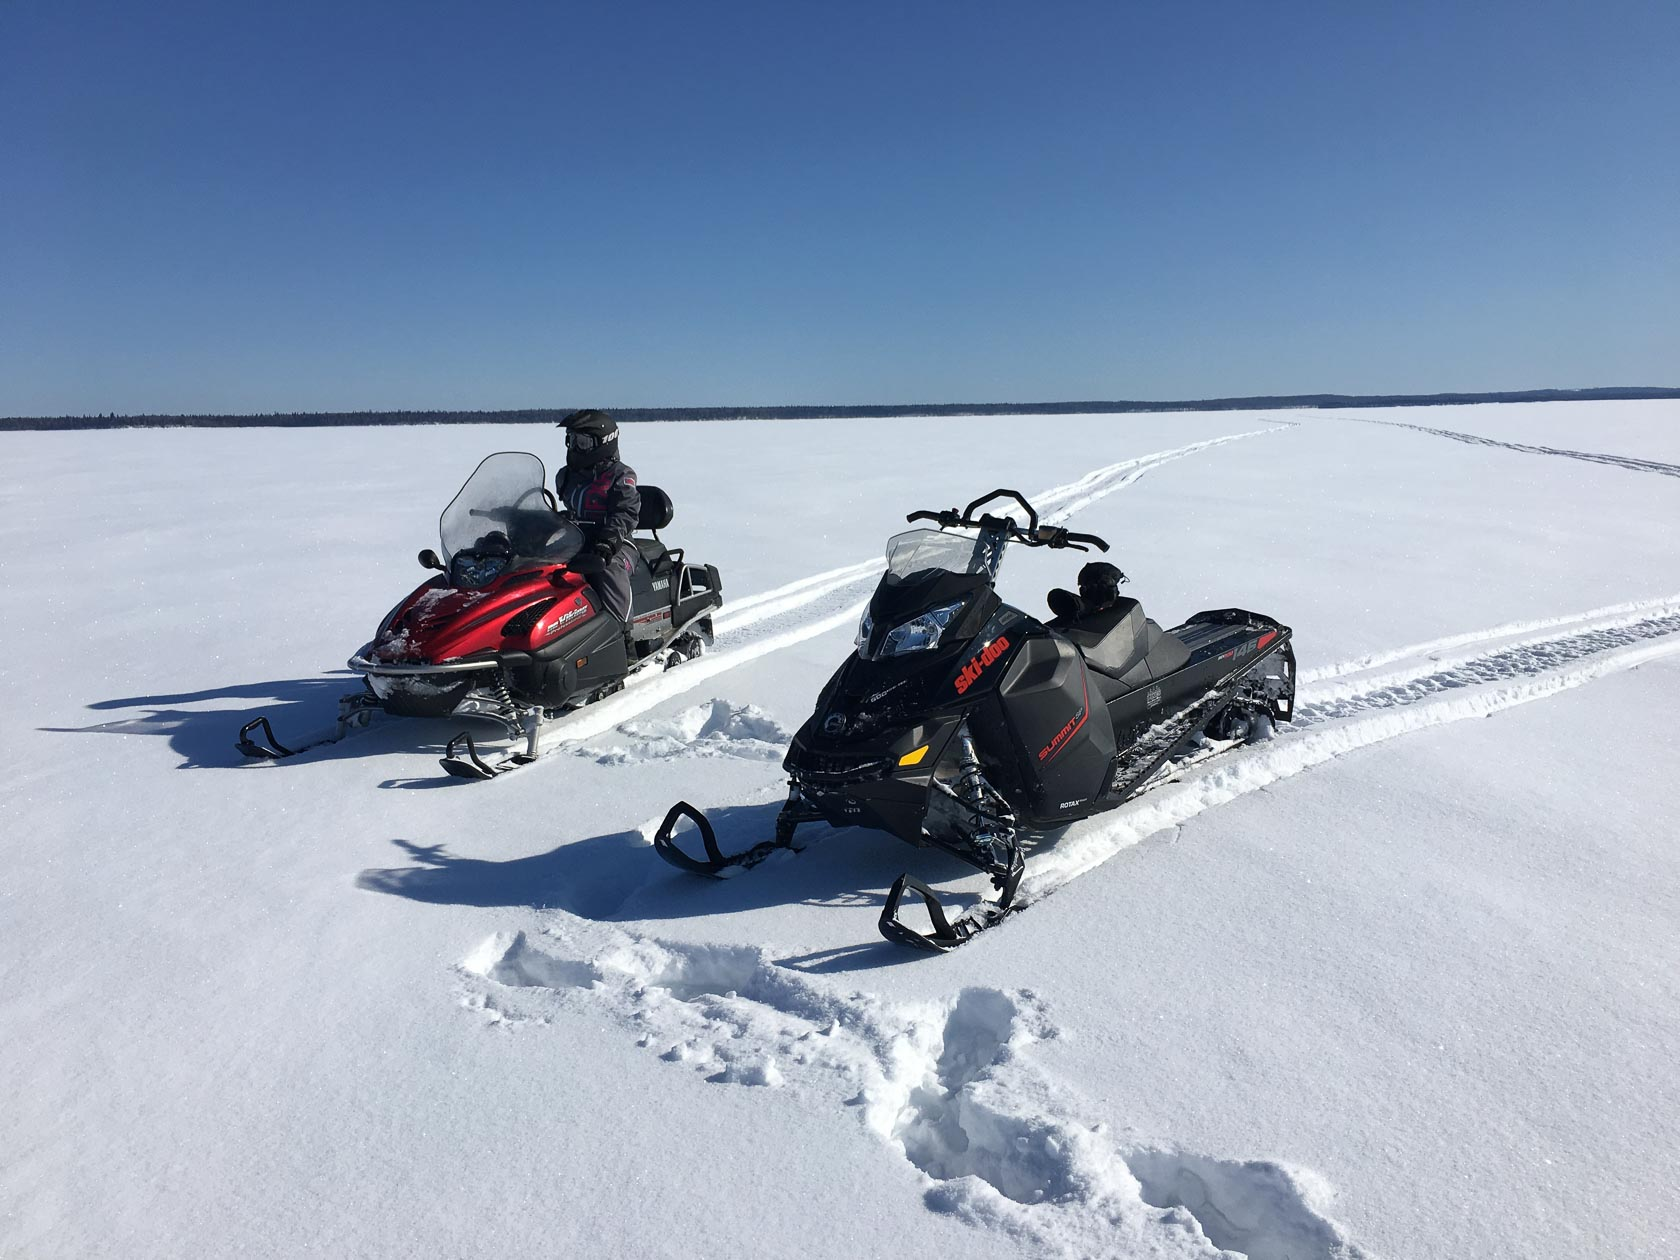 Two snowmobiles sit parked in the middle of a snow-covered frozen lake near Smoothstone Lake Lodge in Saskatchewan, Canada.